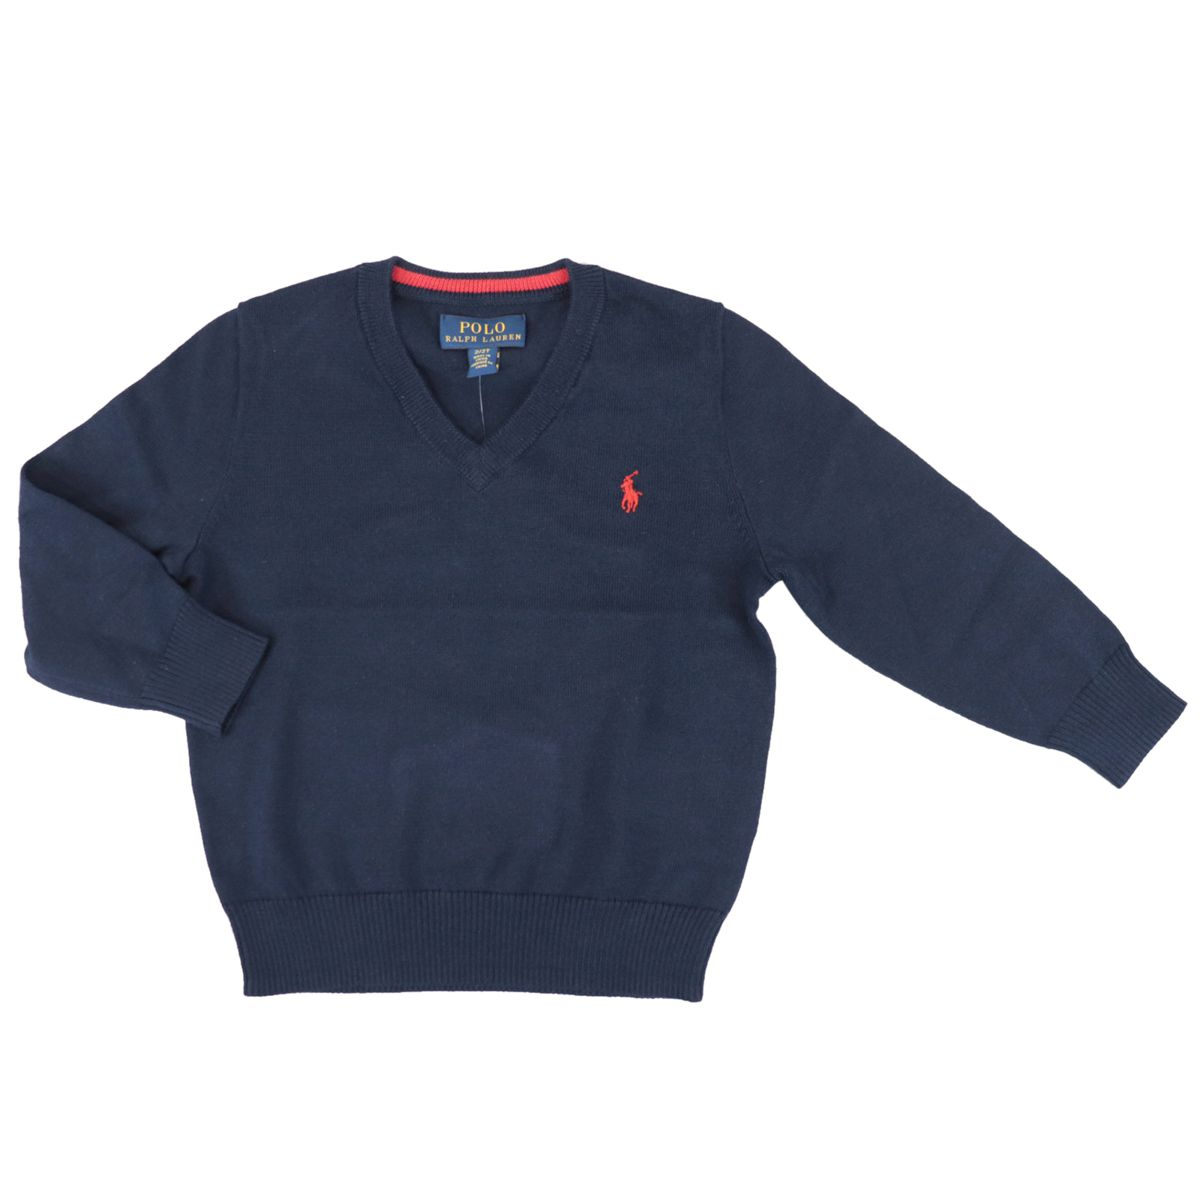 Classic cotton pullover with V-neck and logo Navy Polo Ralph Lauren